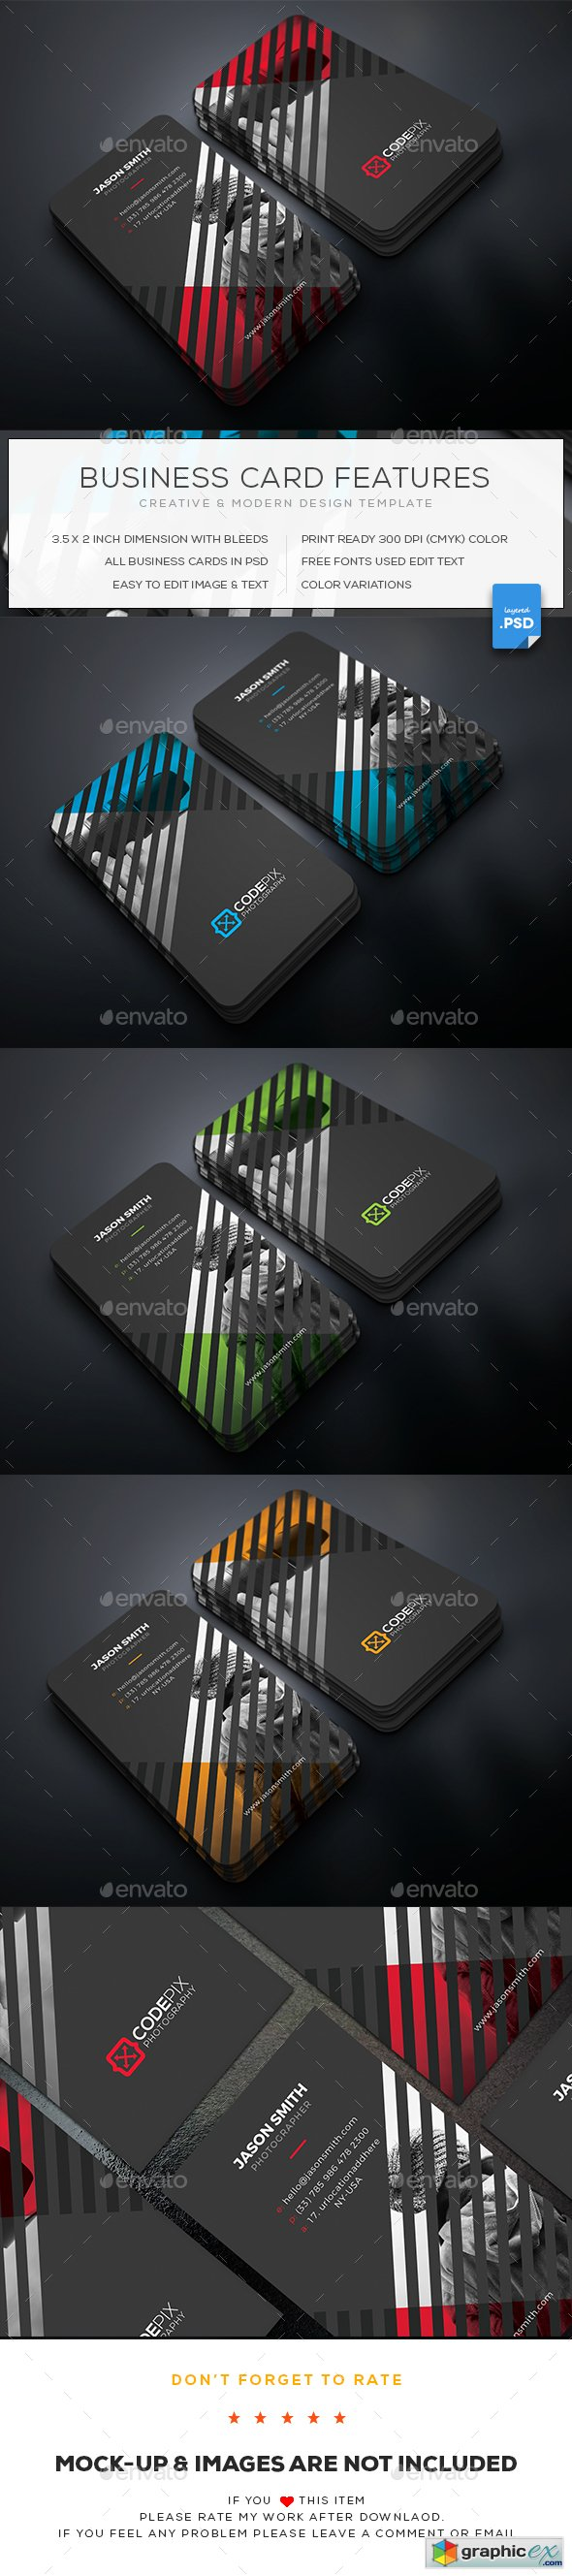 Photography Business Card 20217576